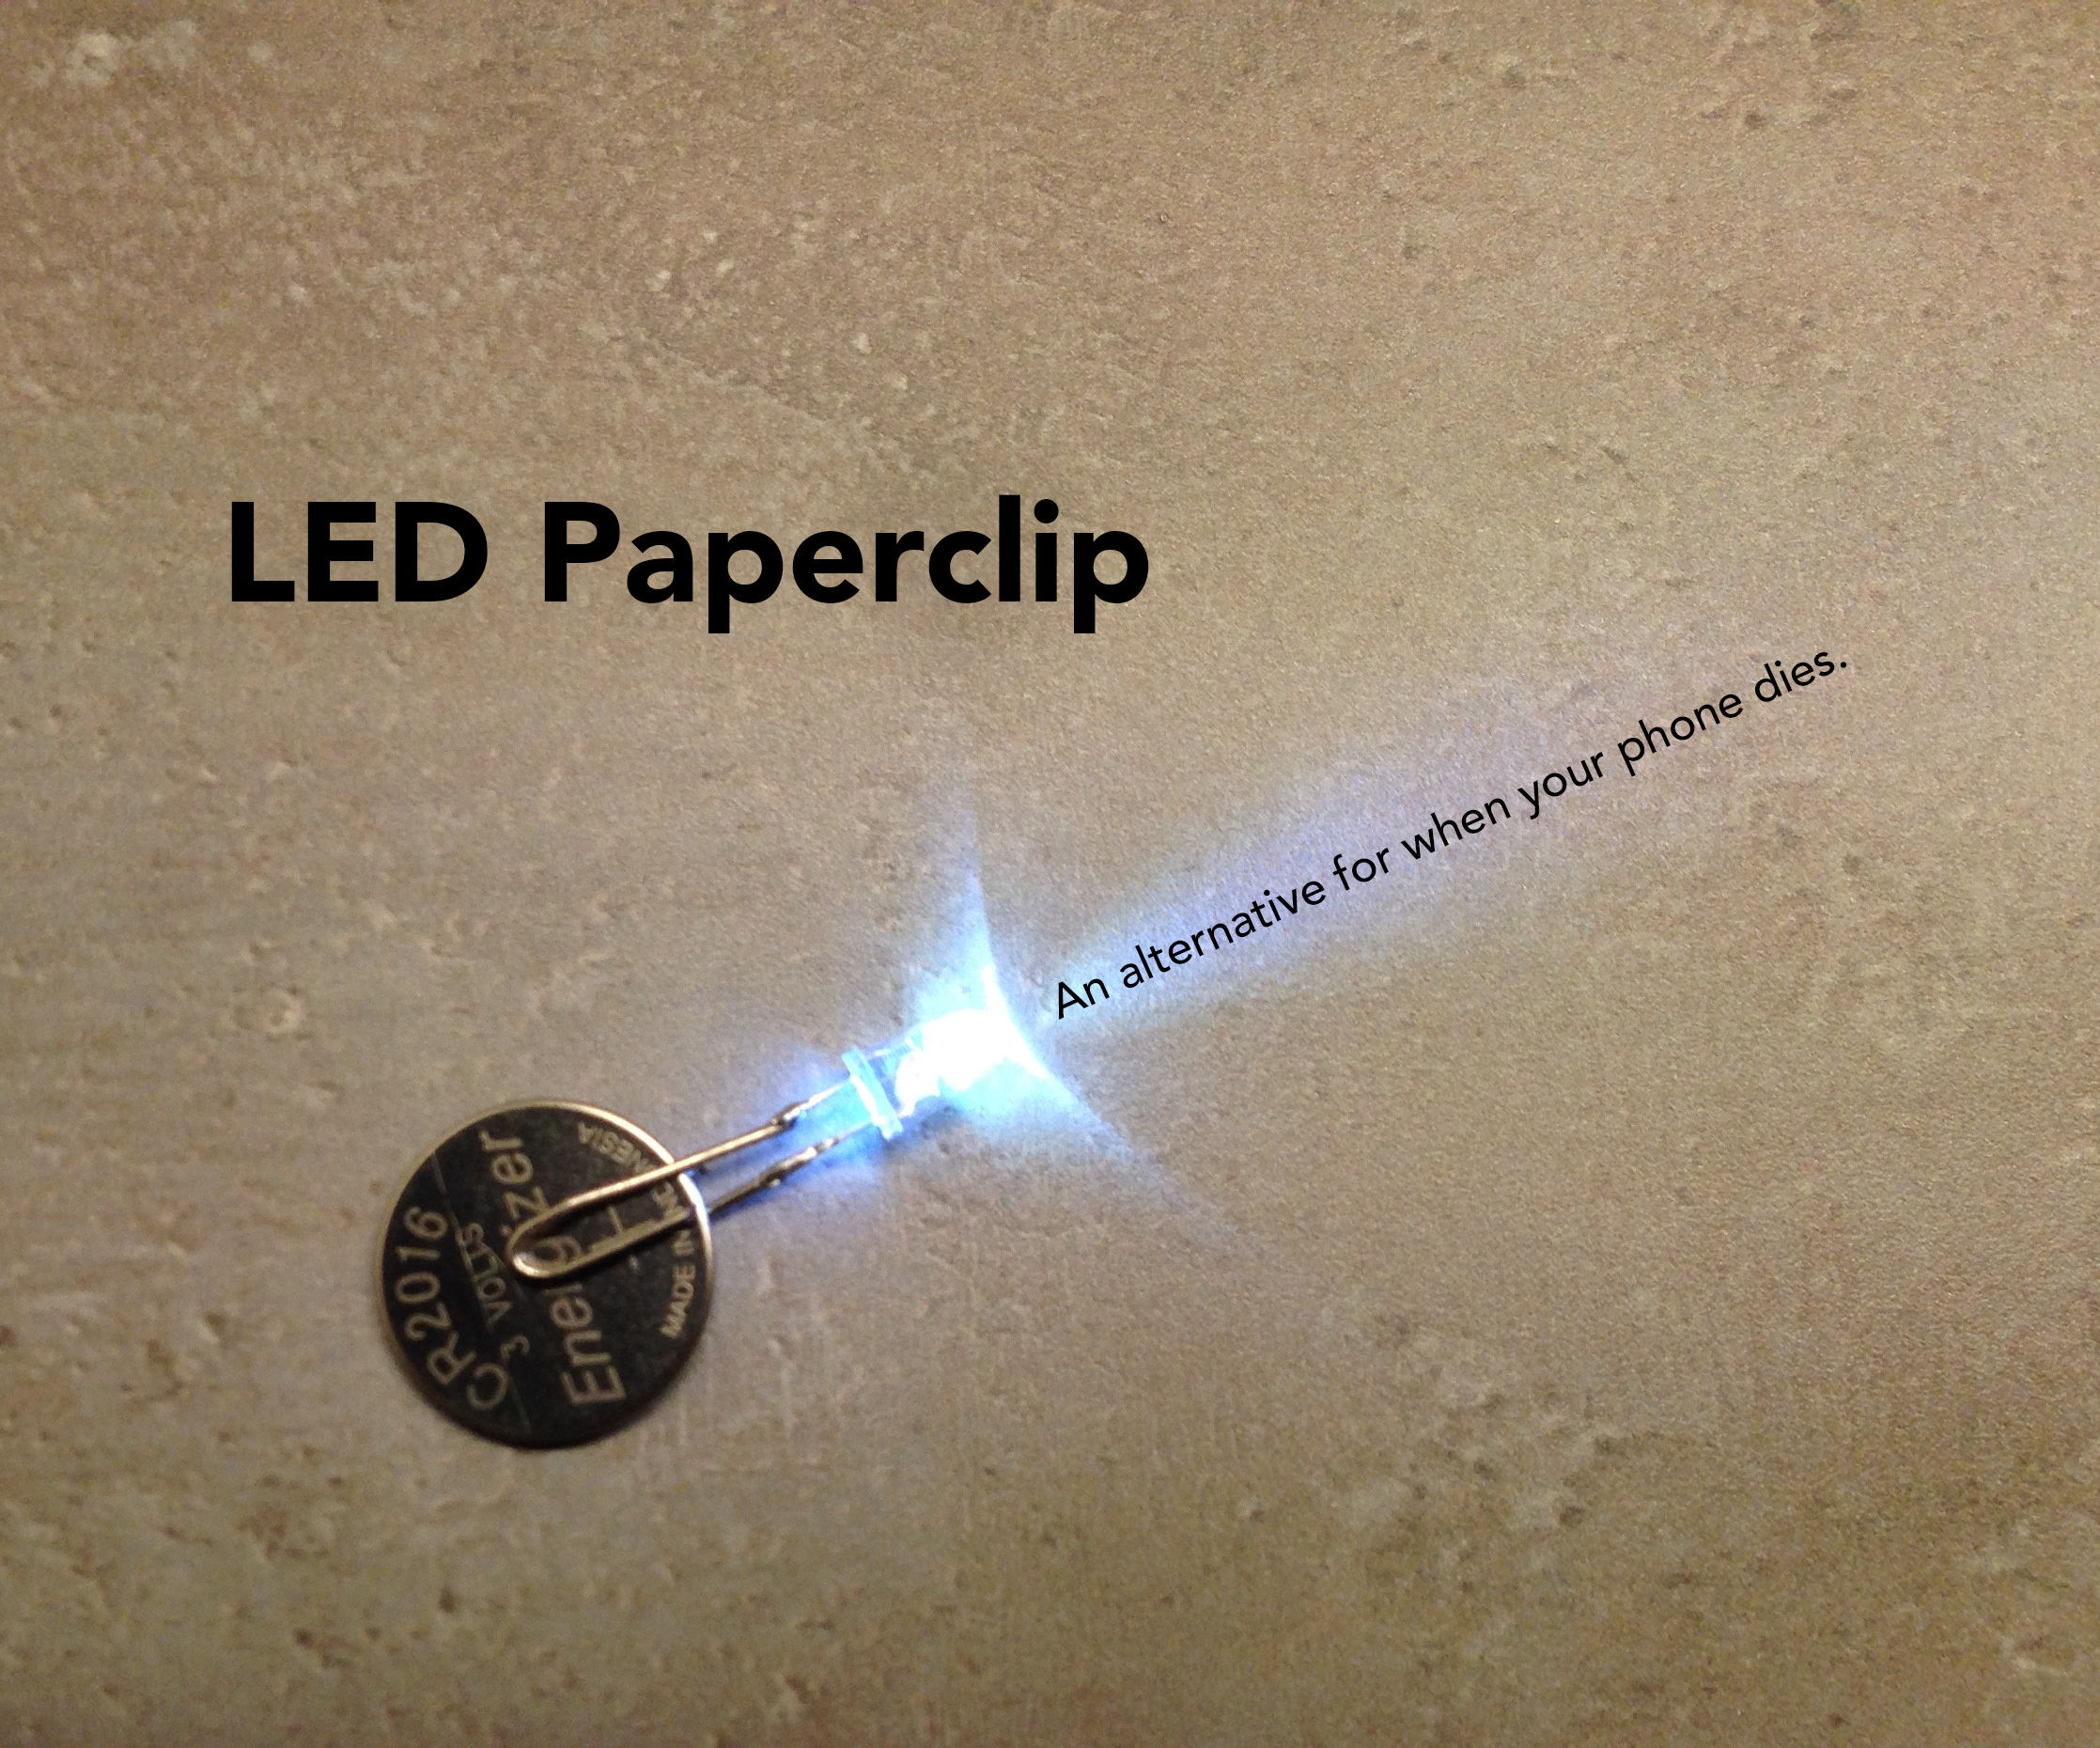 LED Paperclip